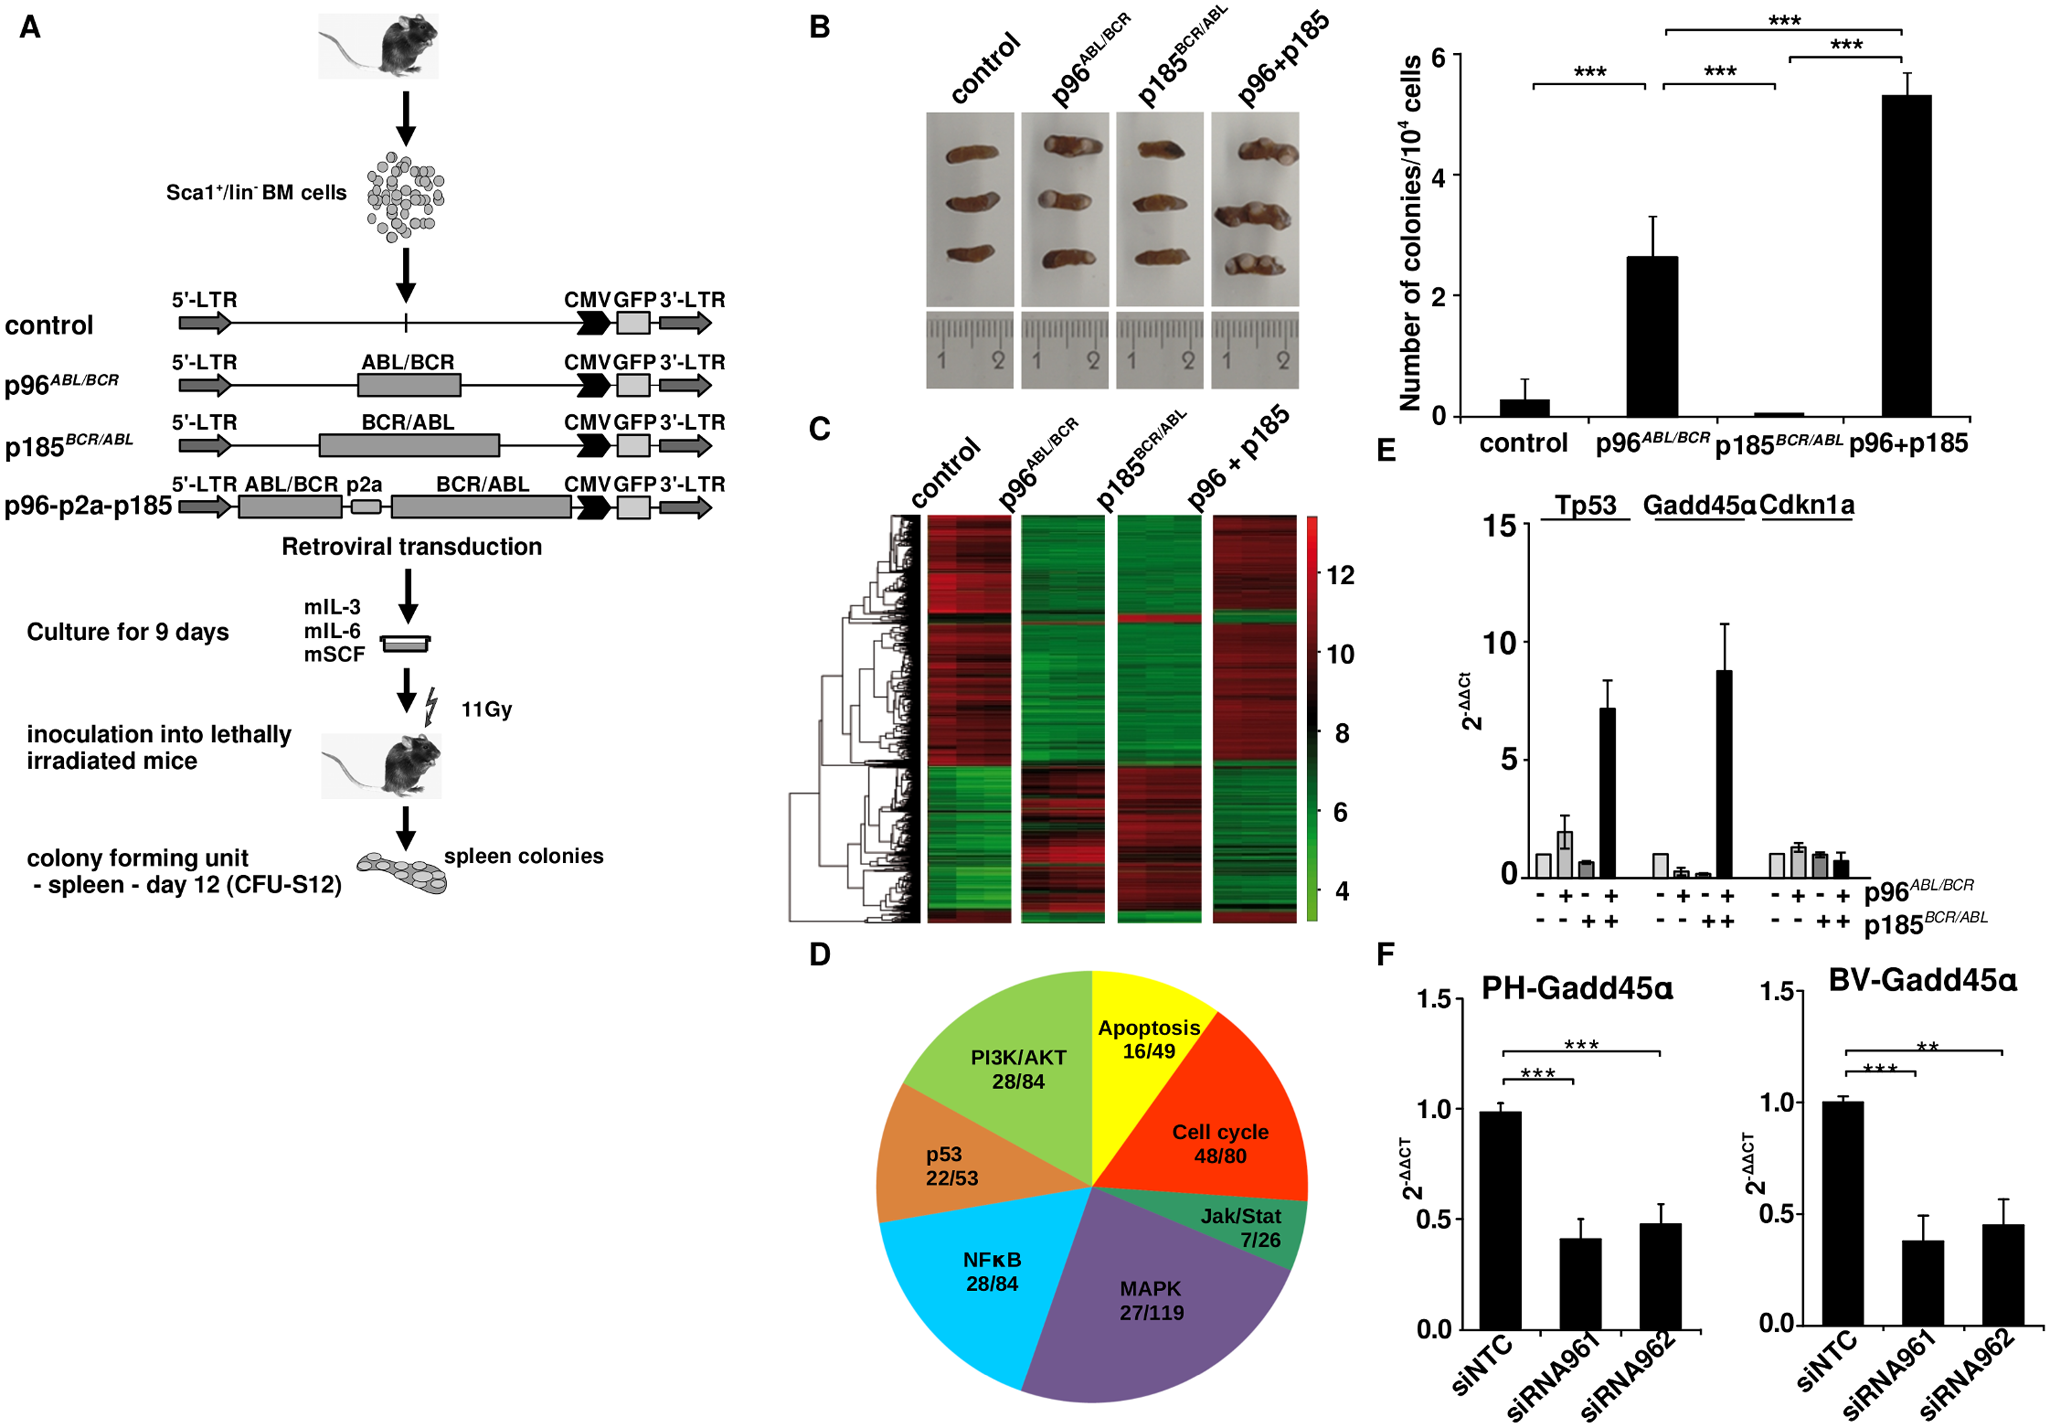 Stem cell colonogenic potential of t(9;22) fusion proteins.